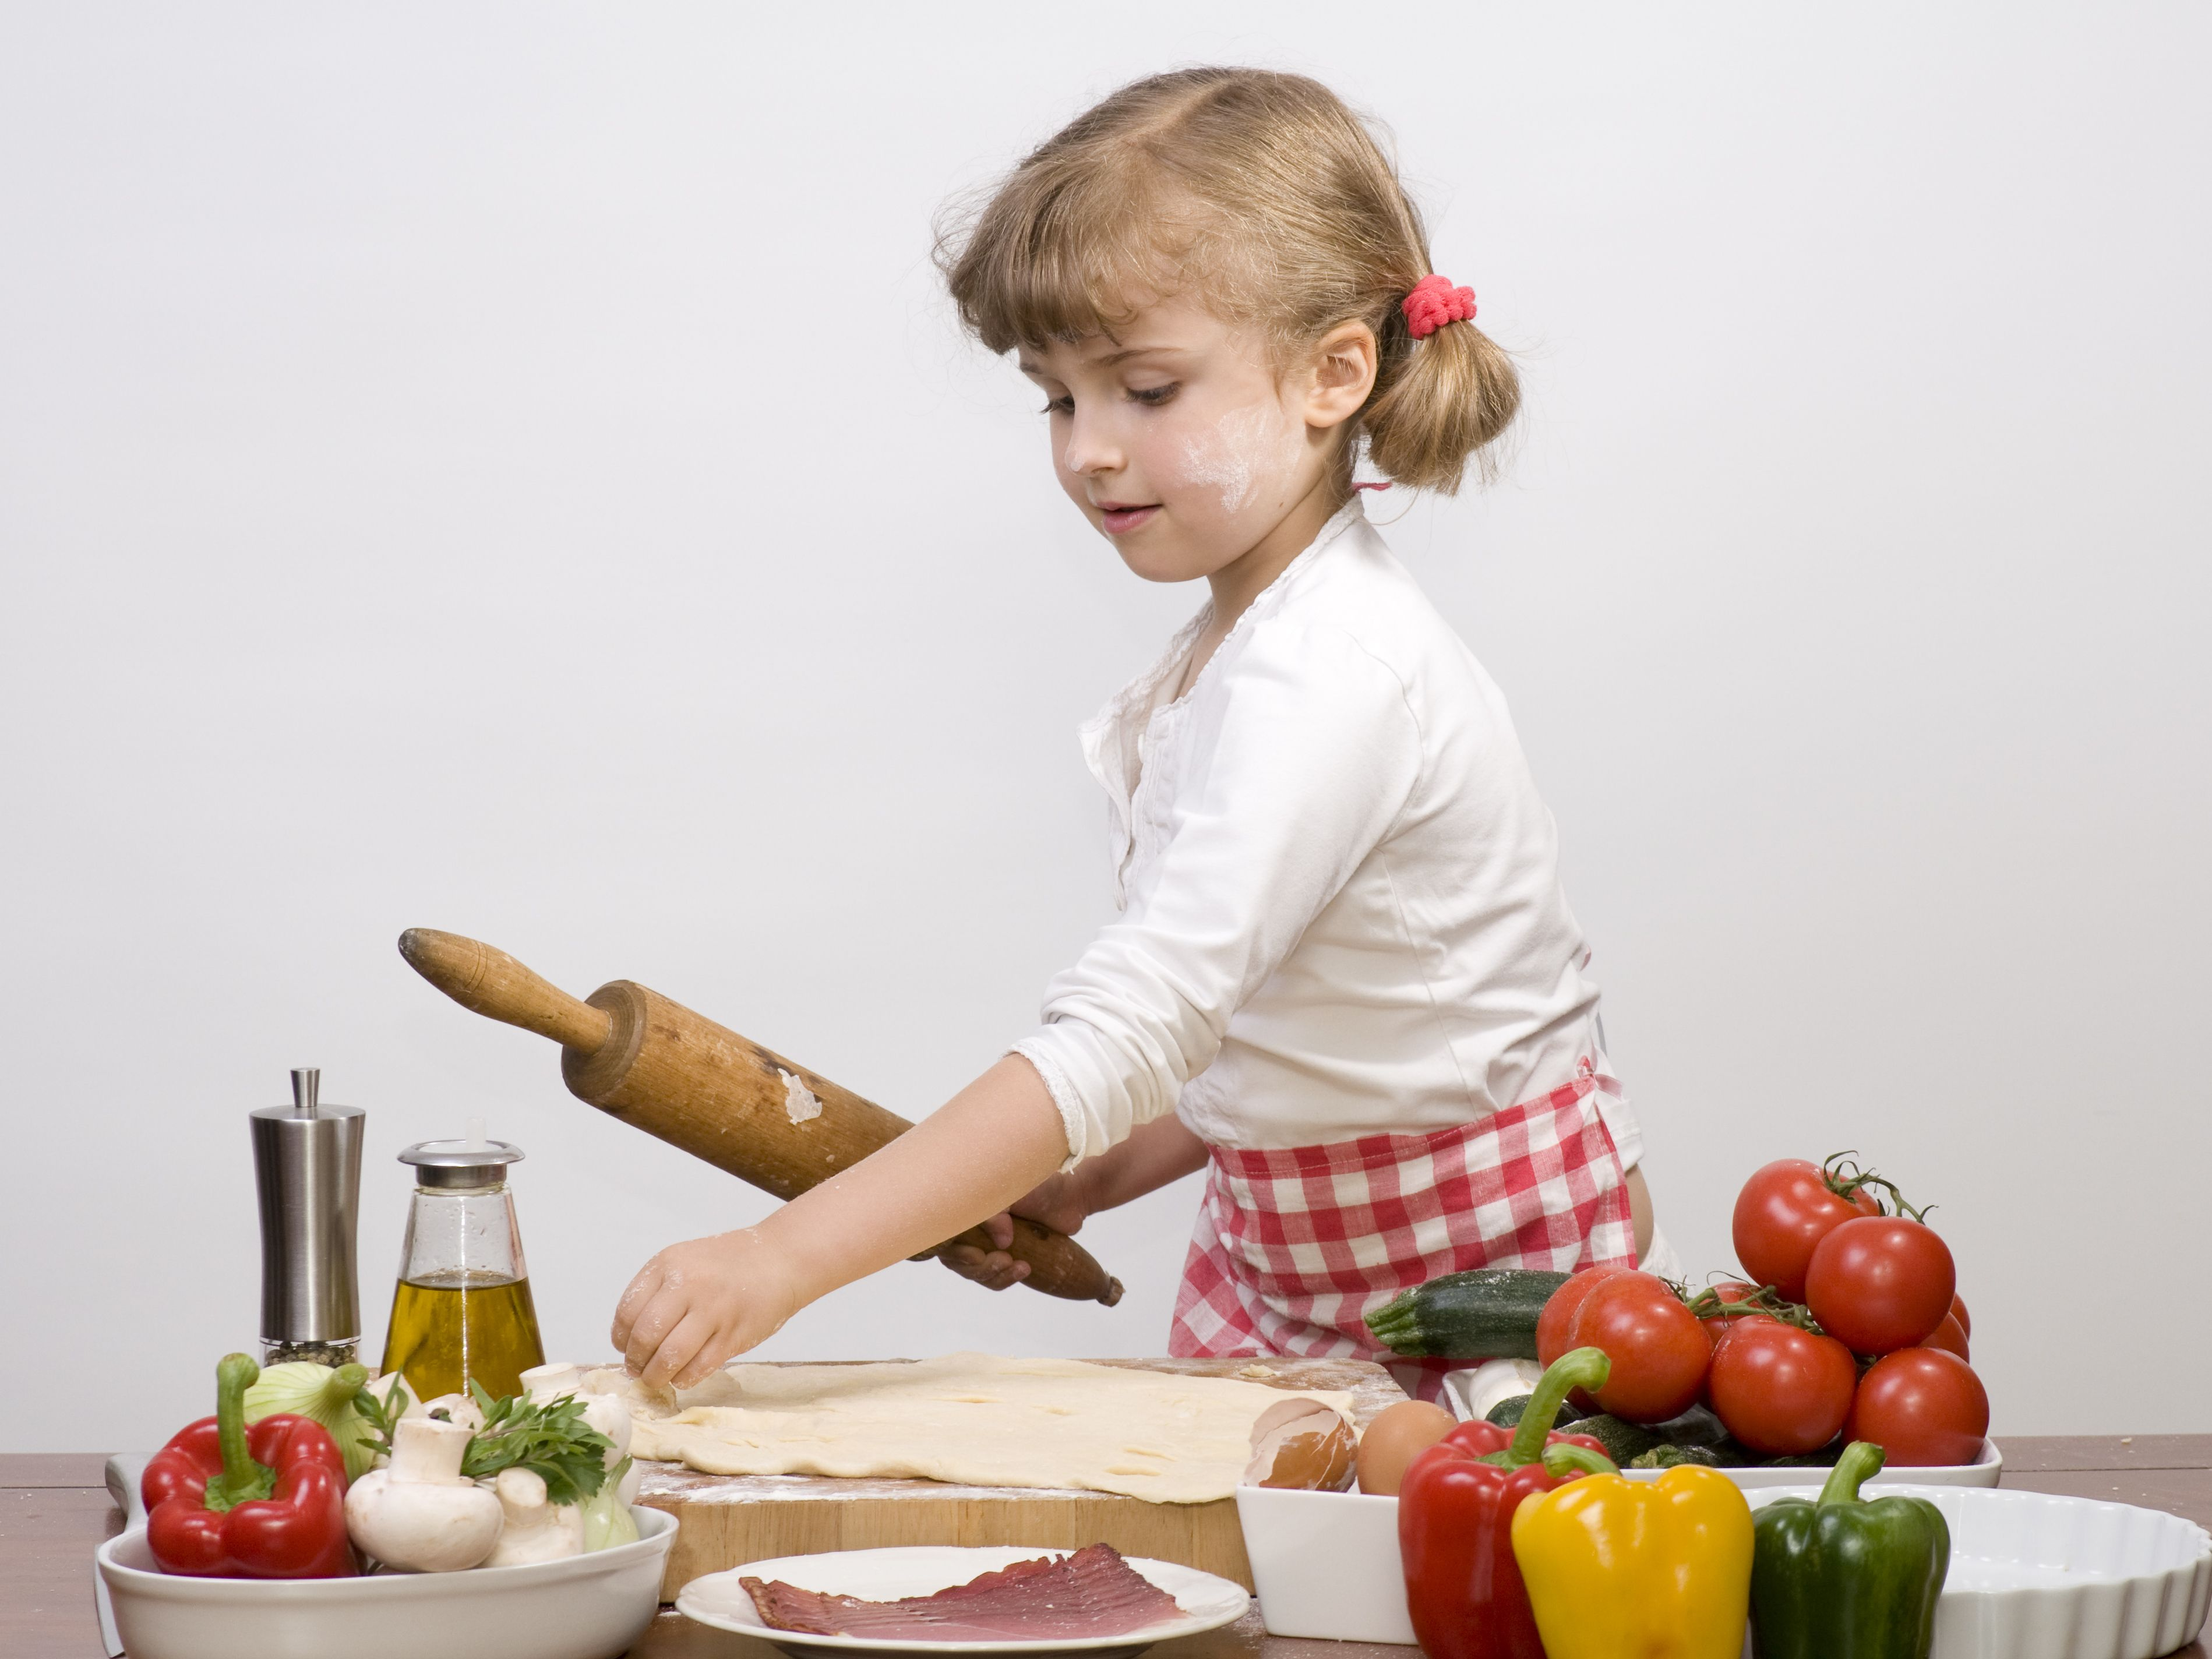 12+ Cook childrens home health vickery ideas